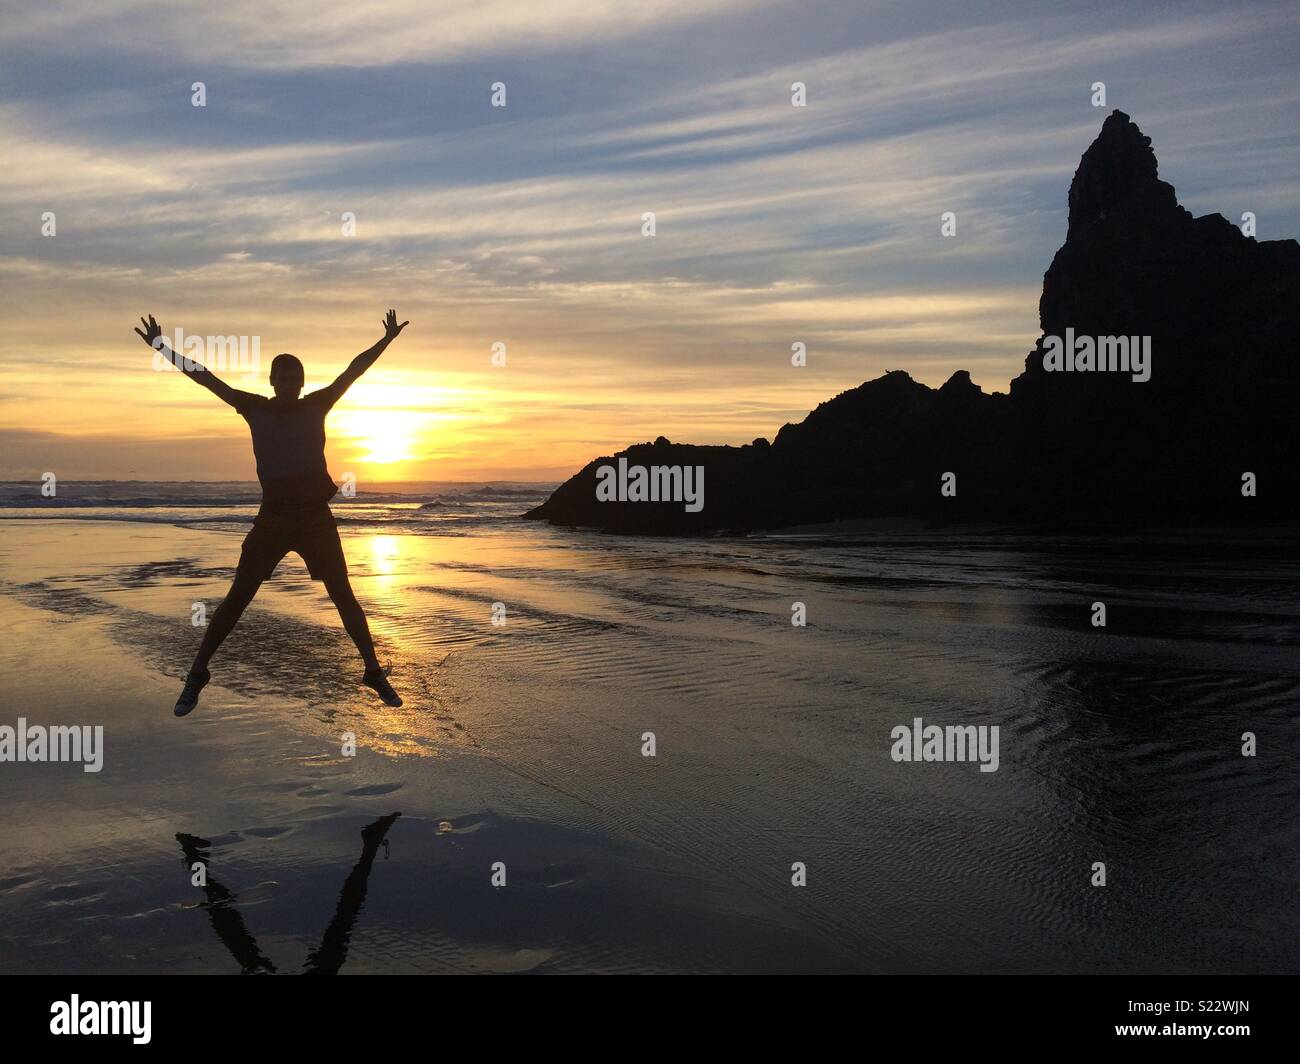 Sunset at Piha, Auckland, New Zealand showing man star jumping in front of mountain and sun - Stock Image